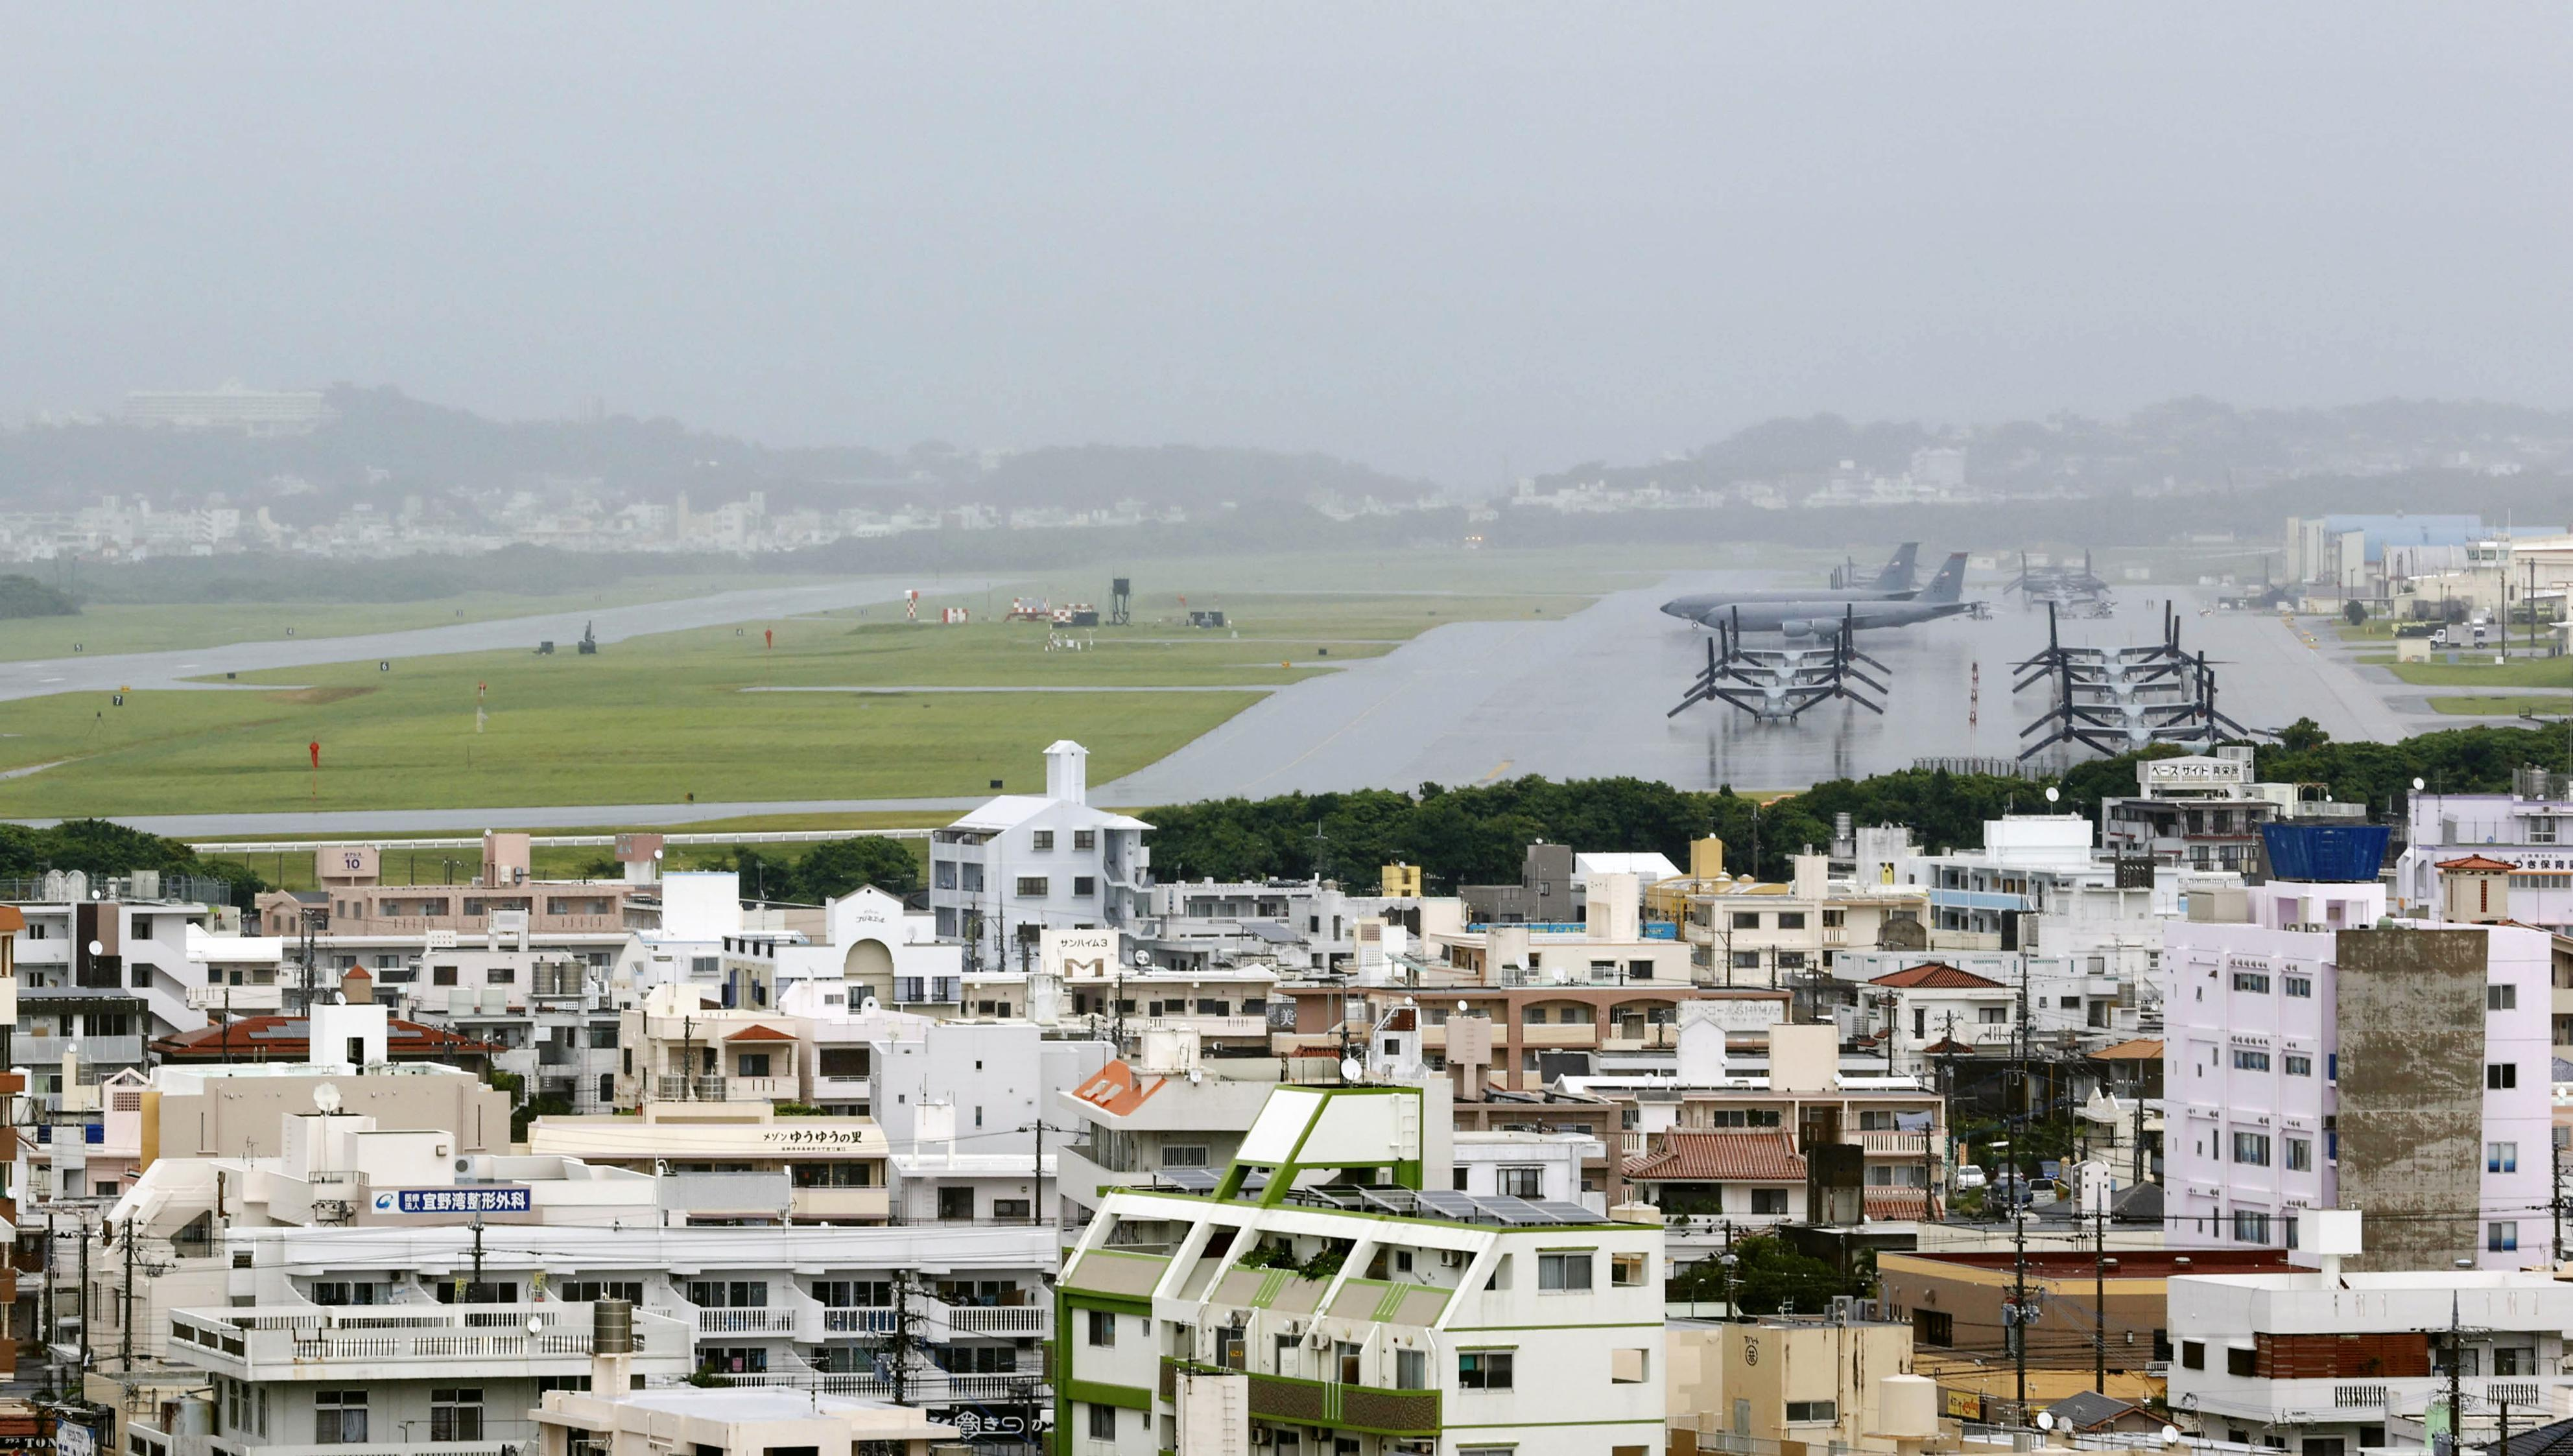 Photo shows U.S. Marine Corps Air Station Futenma in Ginowan in Japan's southern island prefecture of Okinawa on June 22, 2020, a day before the 60th anniversary of the enforcement of the revised Japan-U.S. security treaty.